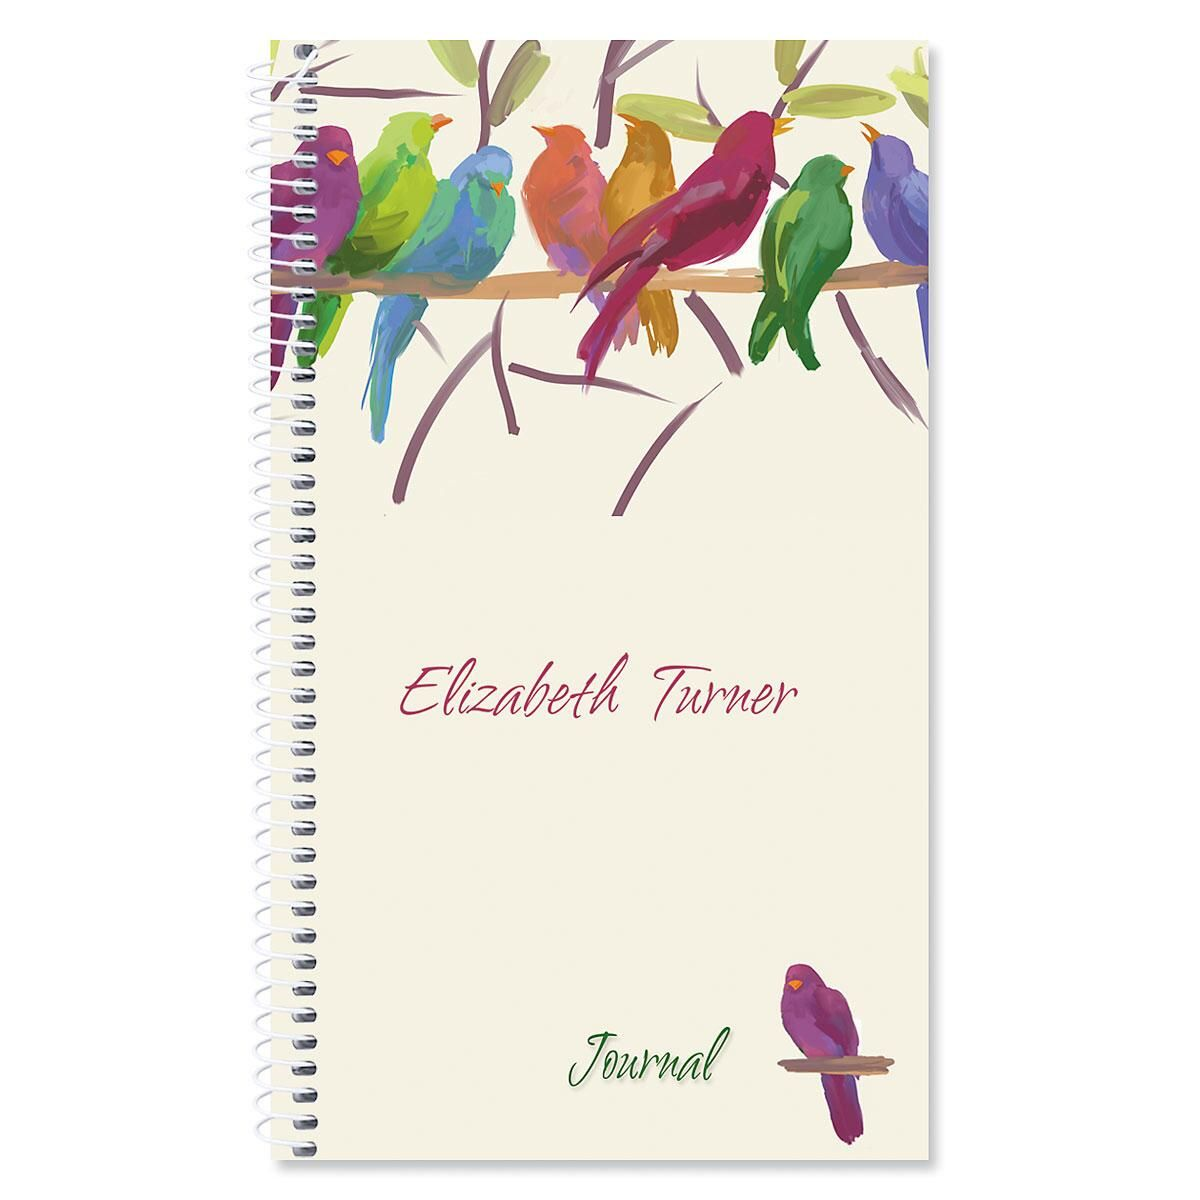 Flocked Together Personalized Journal